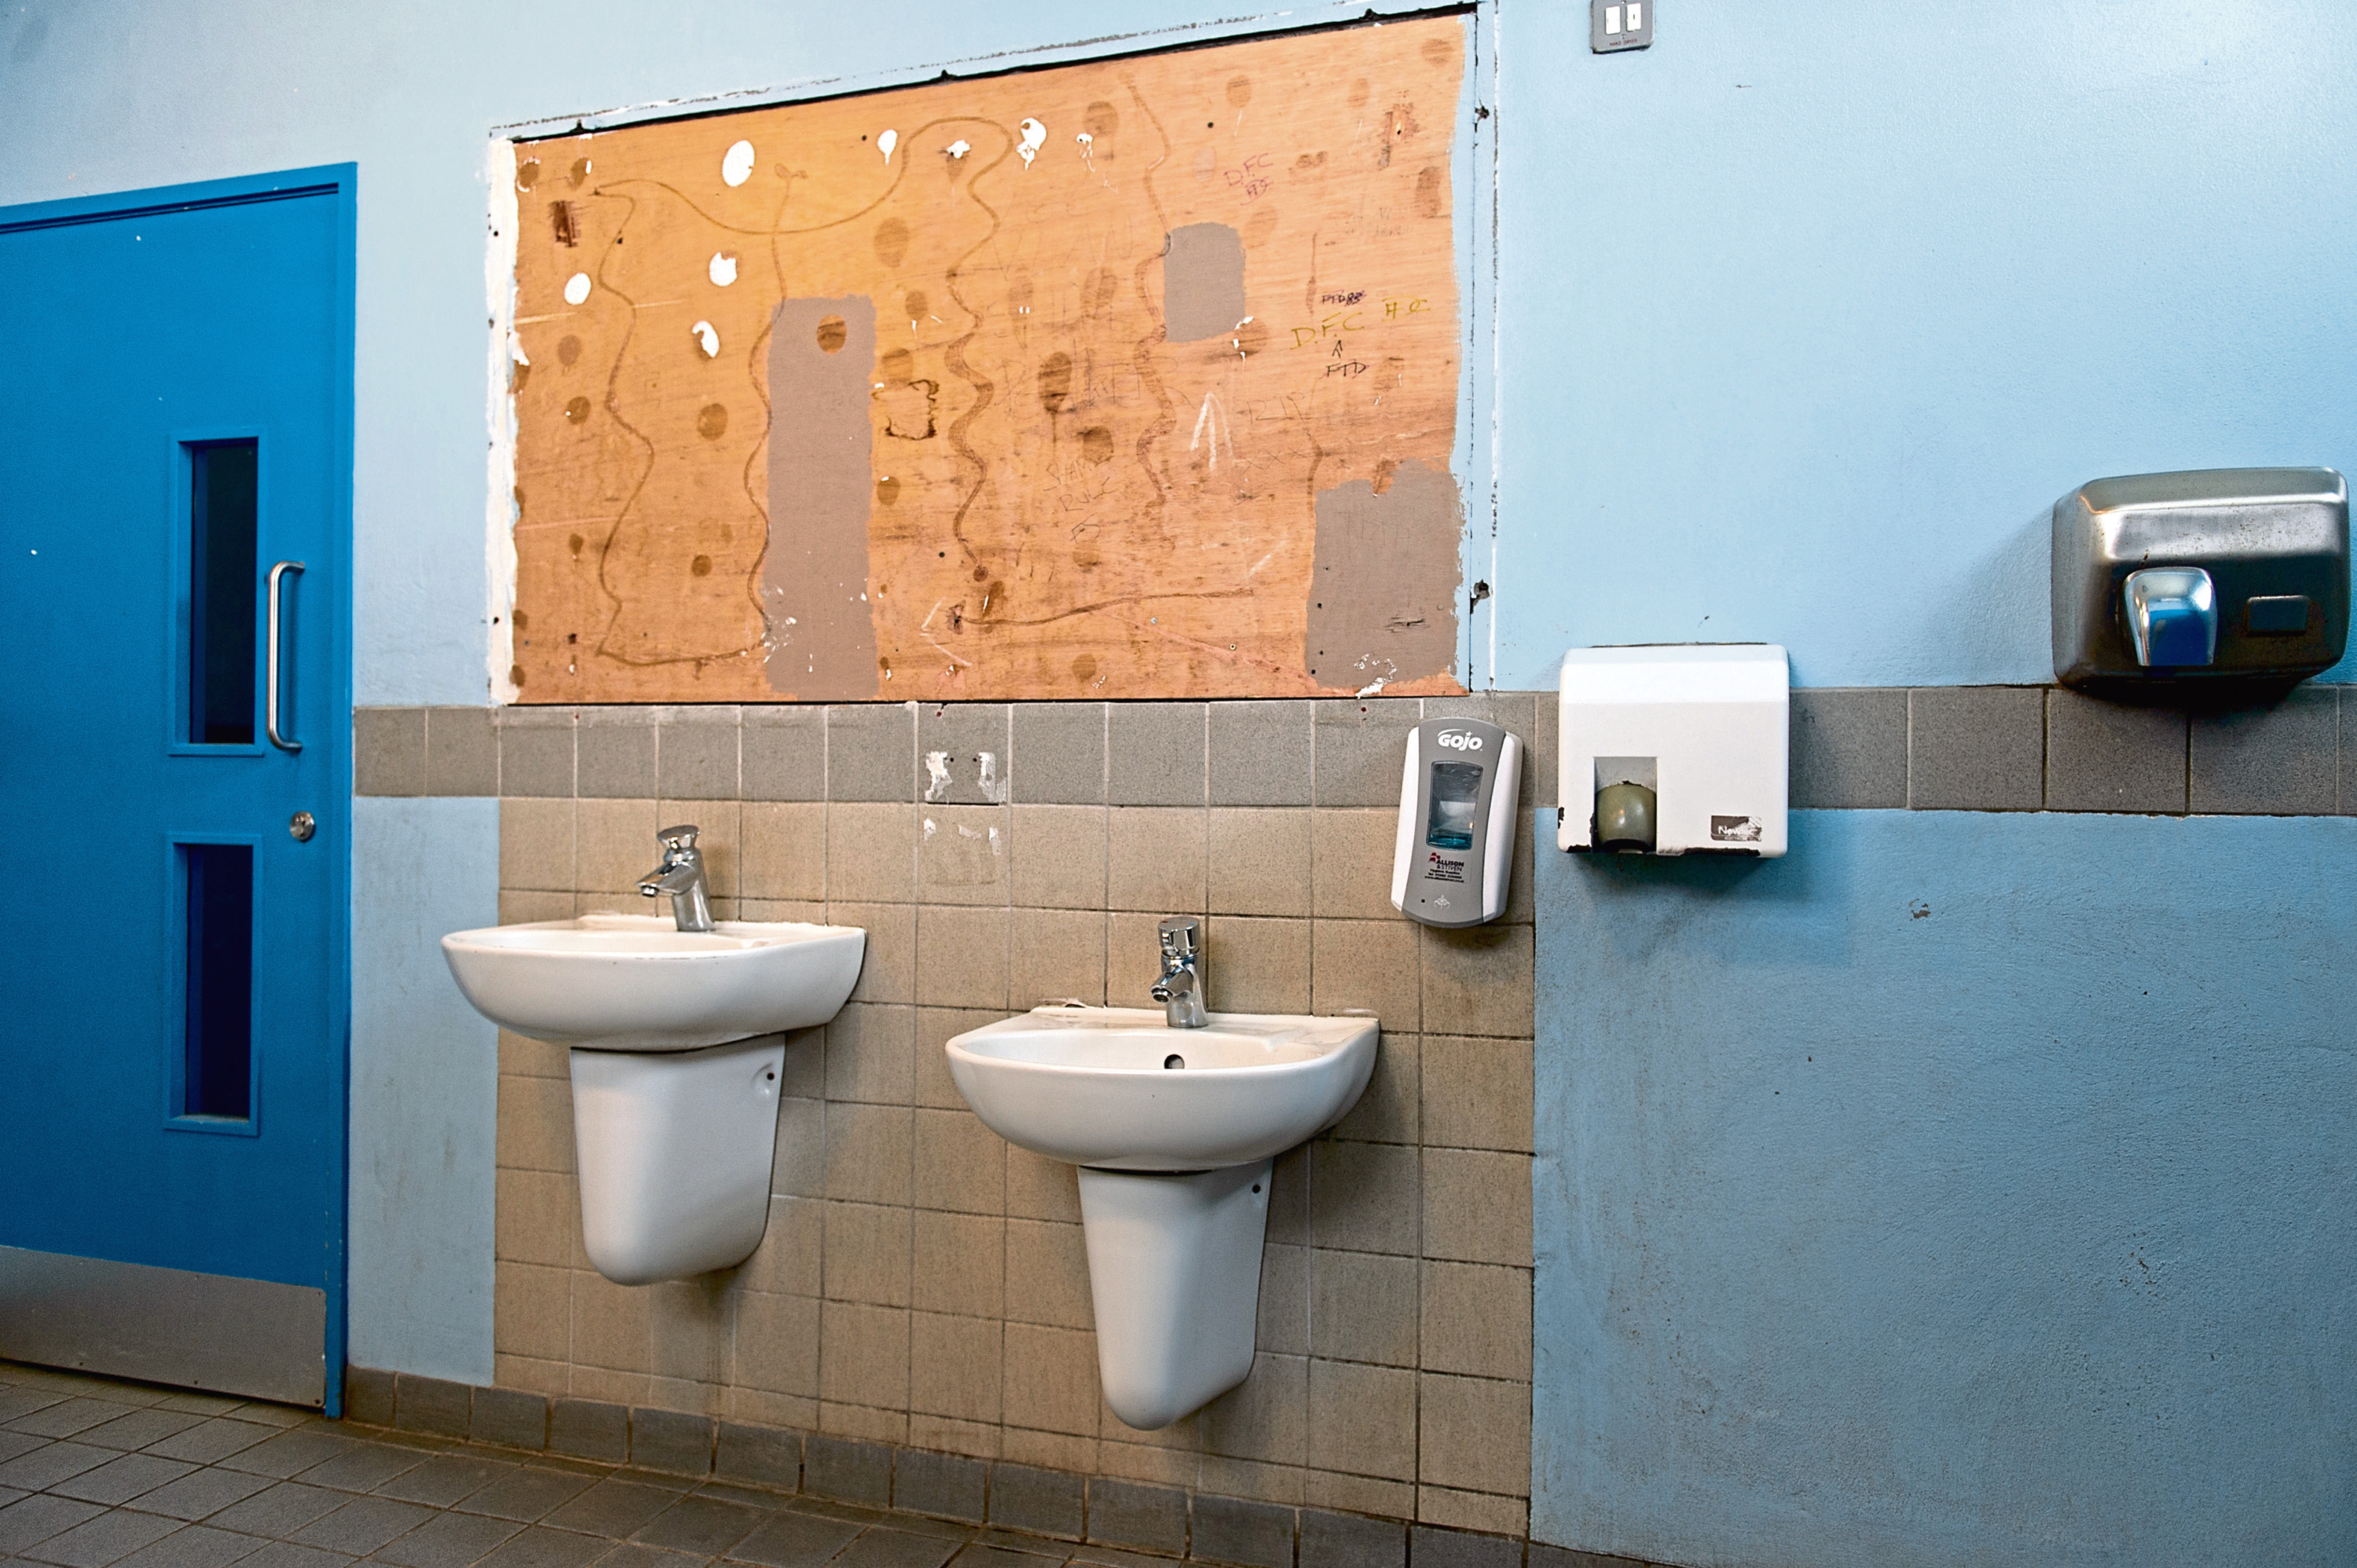 Inside the toilets at Castle Green, Broughty Ferry toilets